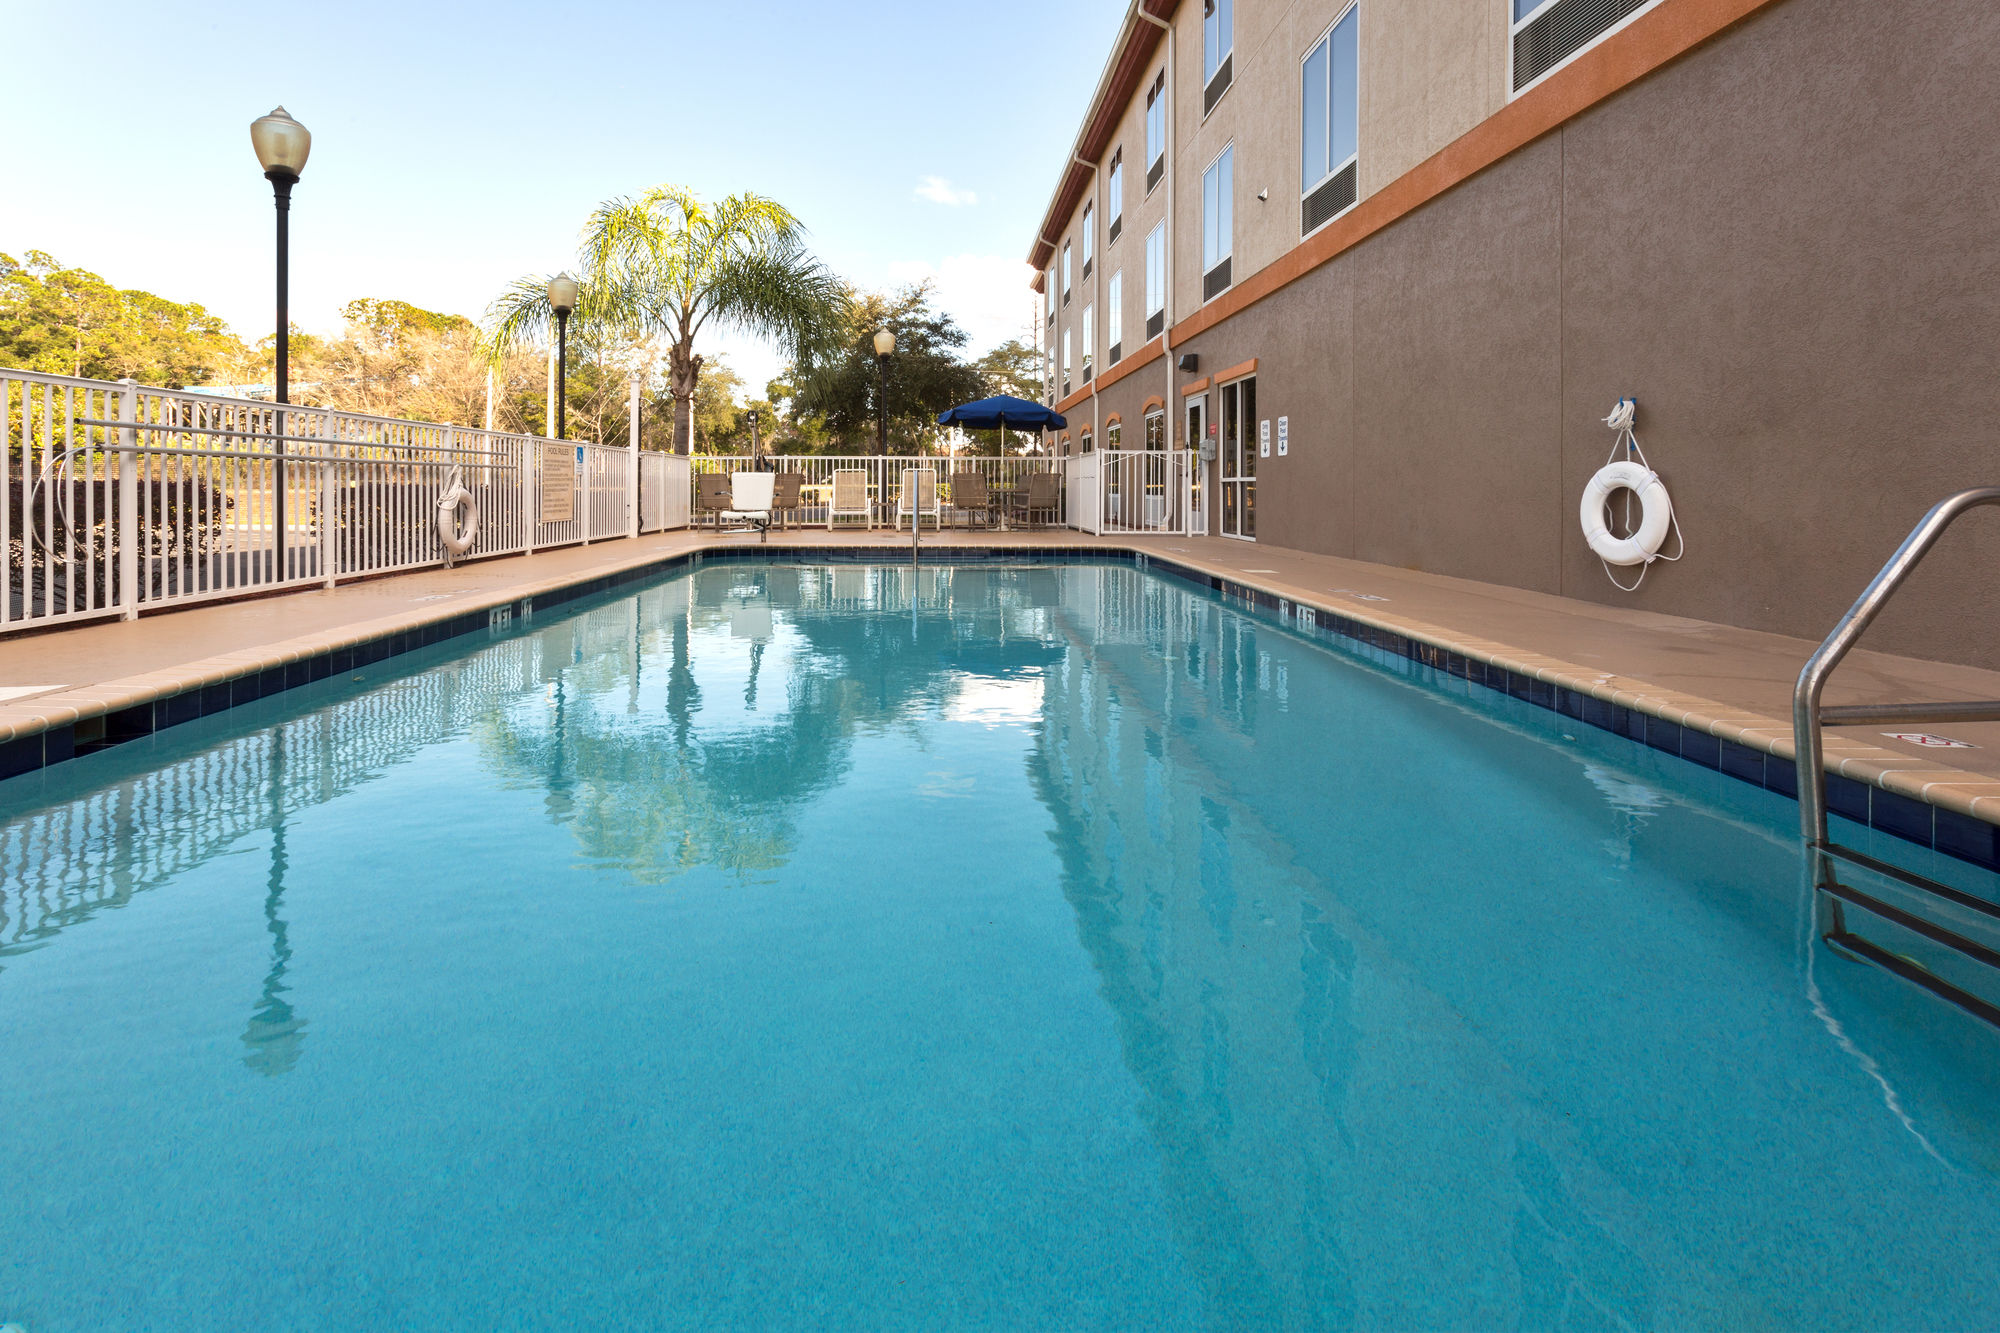 Holiday Inn Express Hotel & Suites Silver Springs - Ocala in Silver Springs, FL